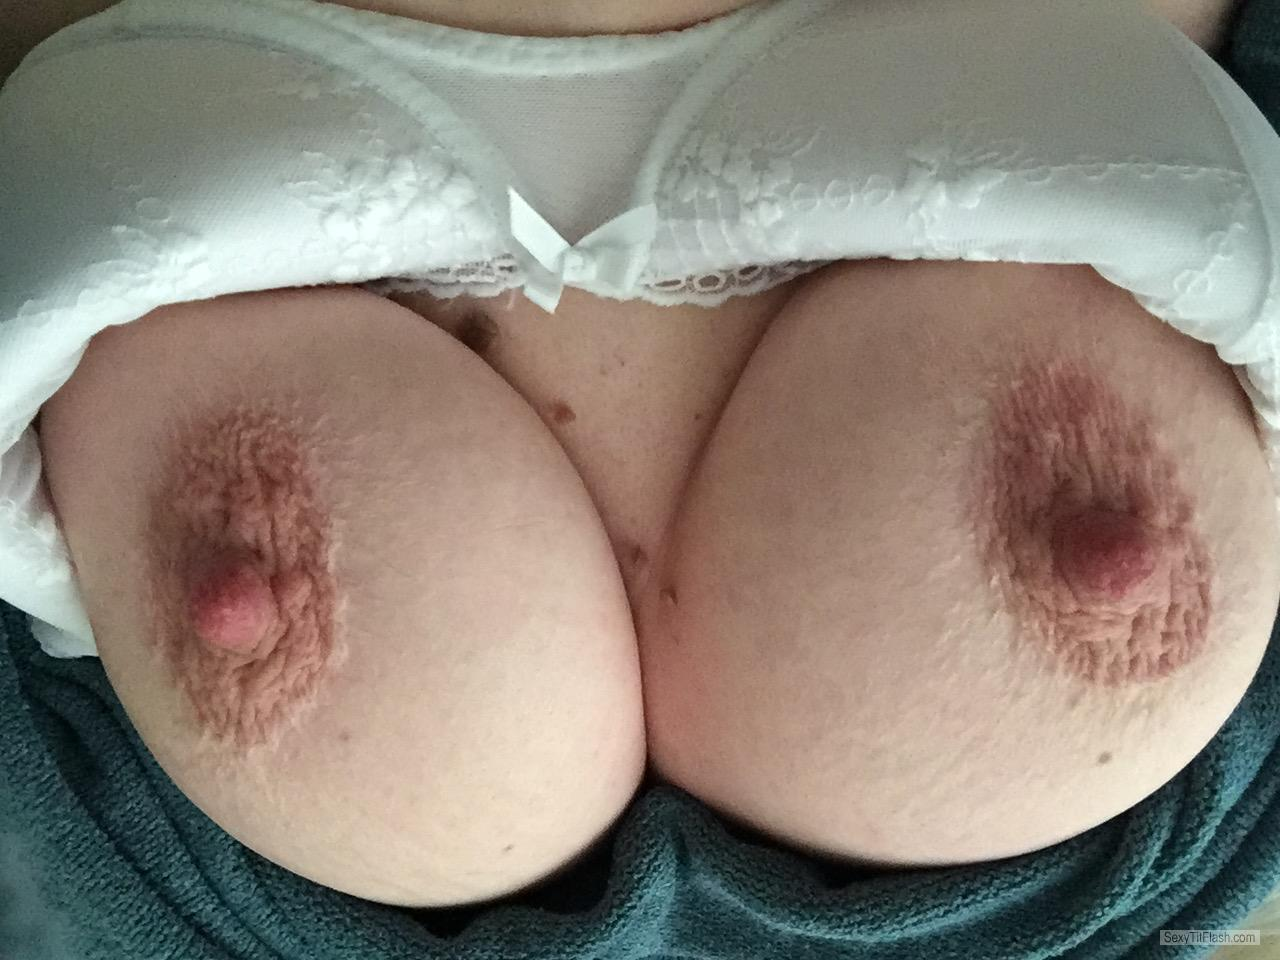 My Big Tits Beauts